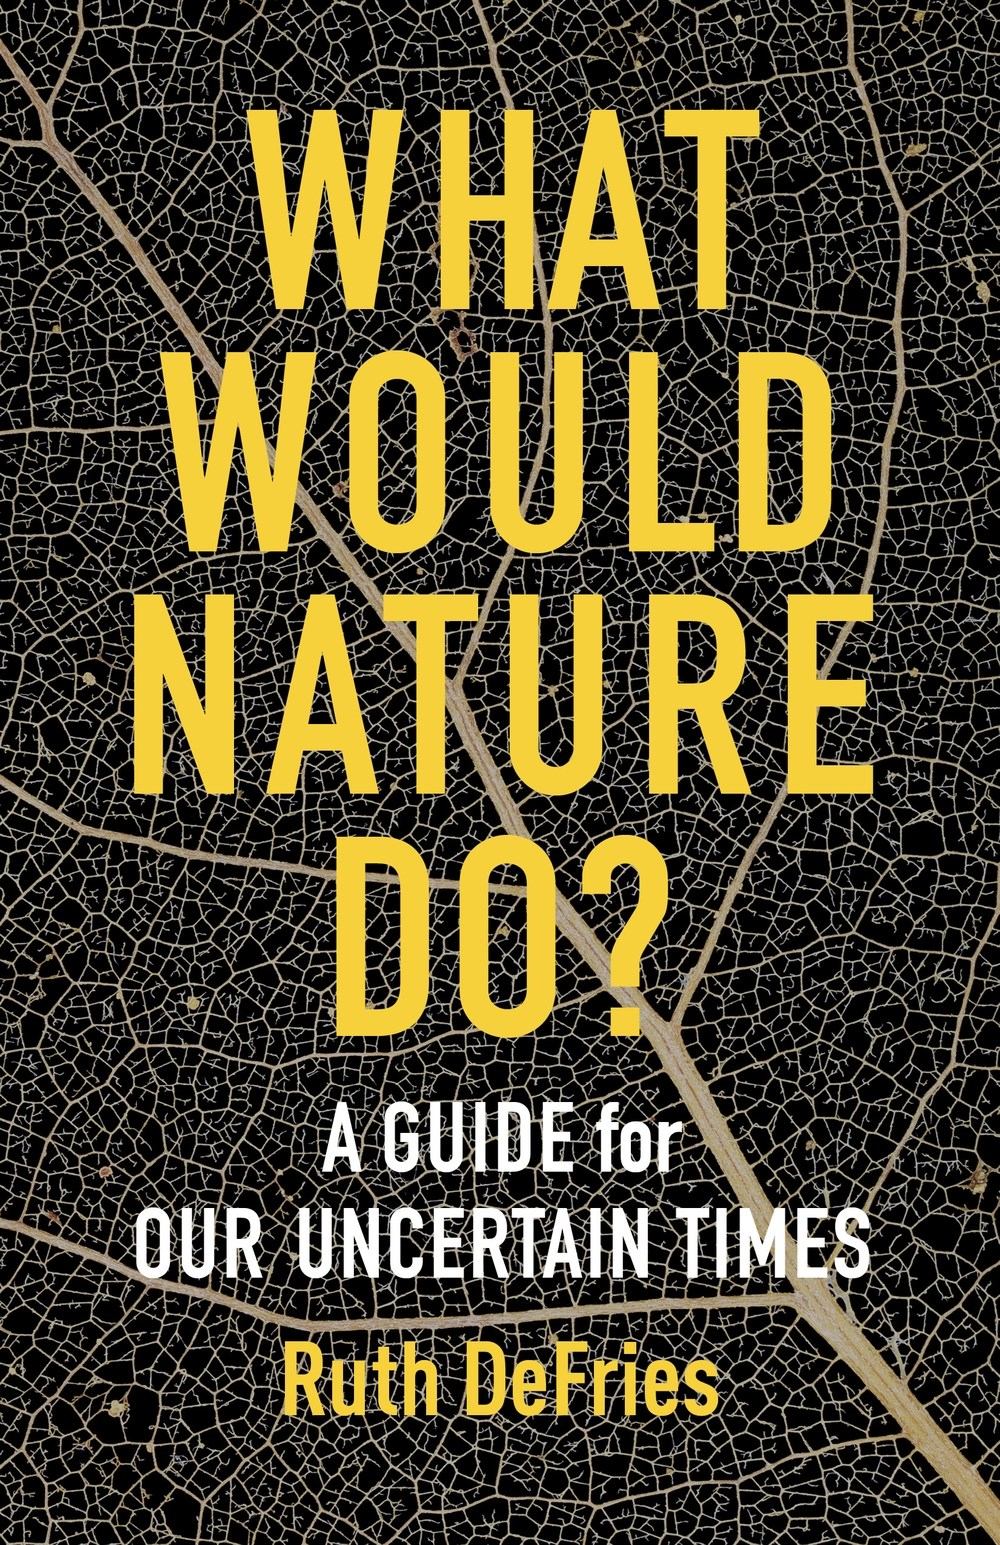 Ruth DeFries argues that a surprising set of time-tested strategies from the natural world can help humanity weather our current ecological crises